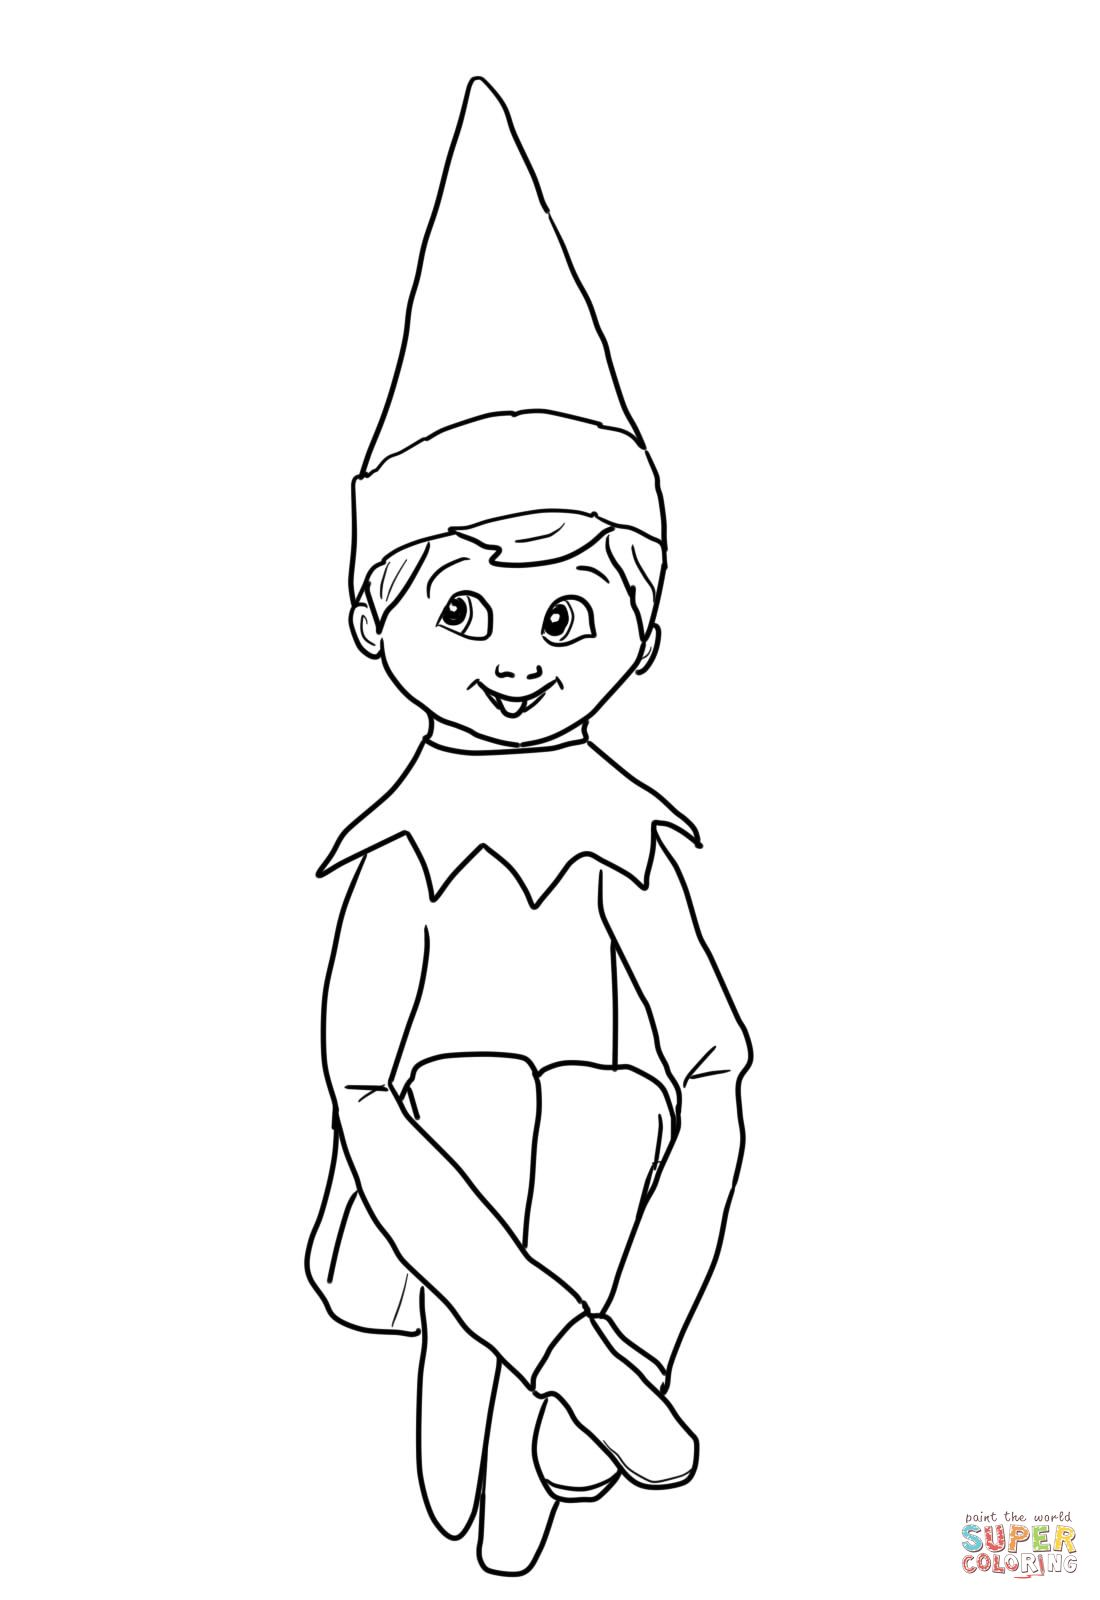 Christmas Coloring Pages Elf With Girl On The Shelf You Might Also Be Interested